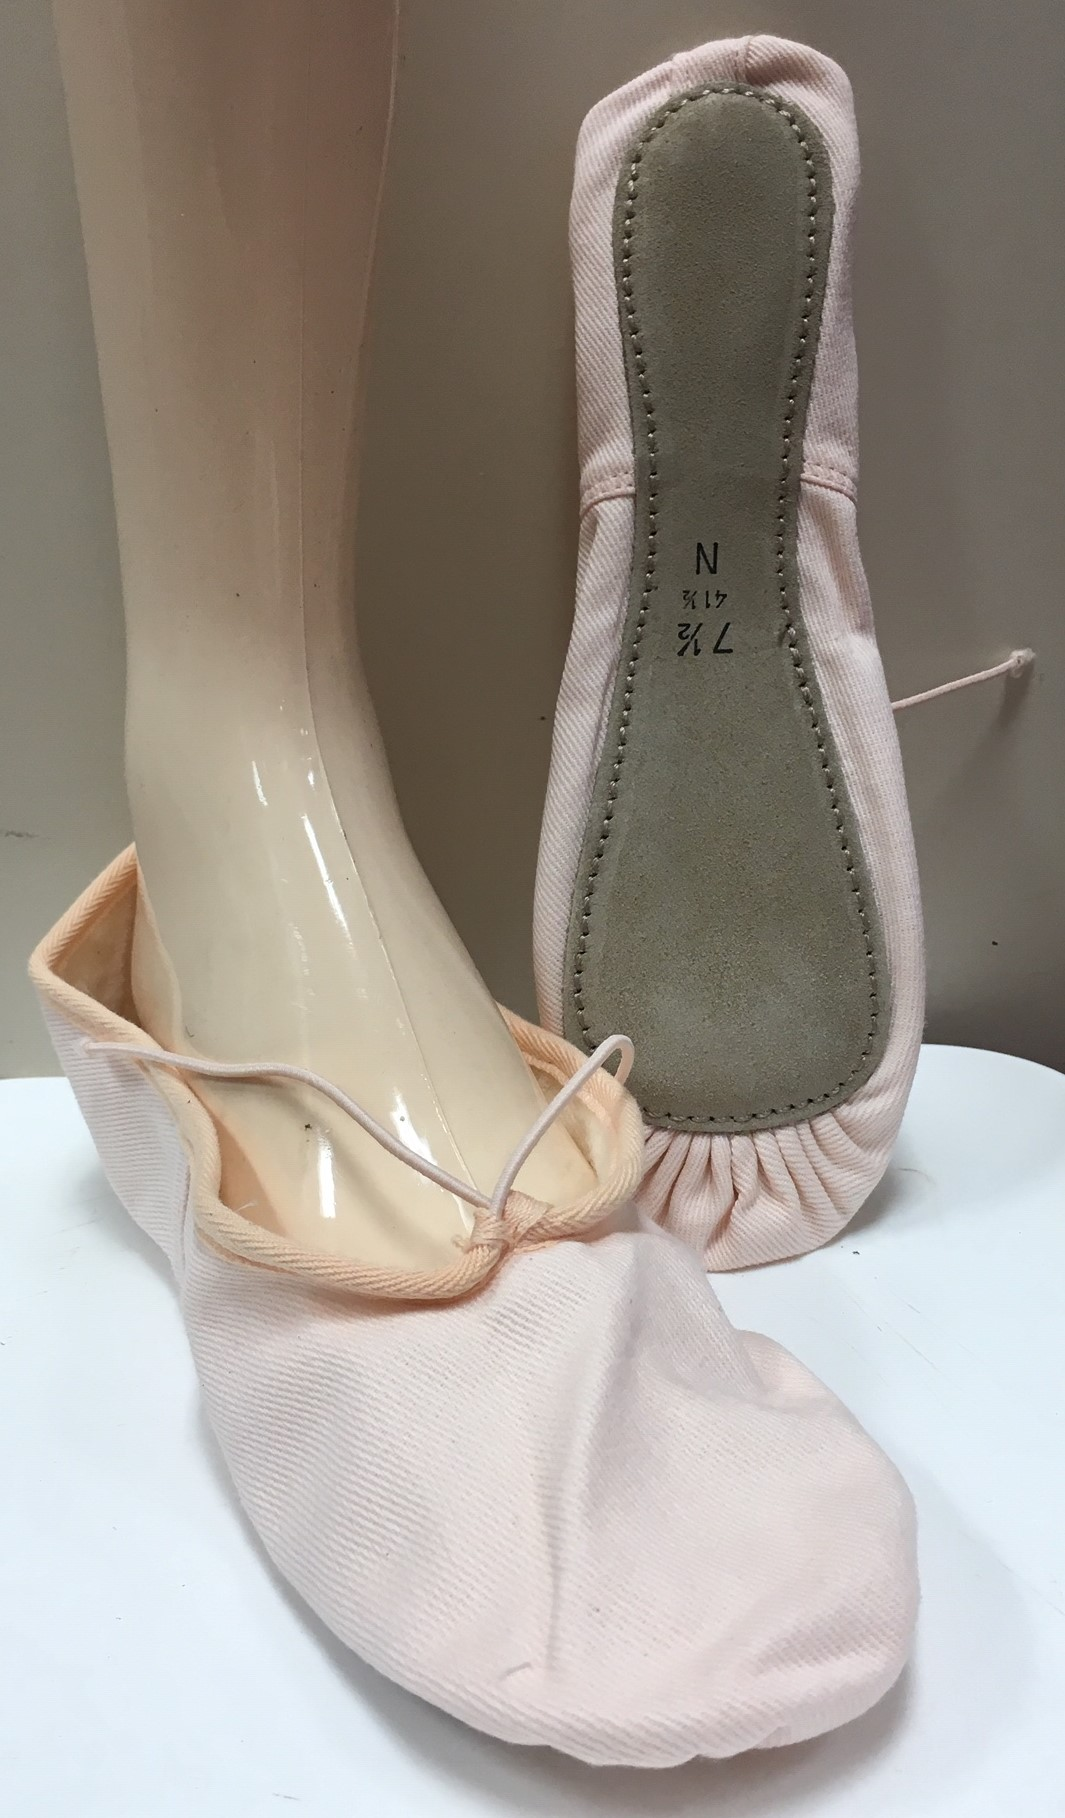 Gamba Full Sole Canvas Ballet Shoes